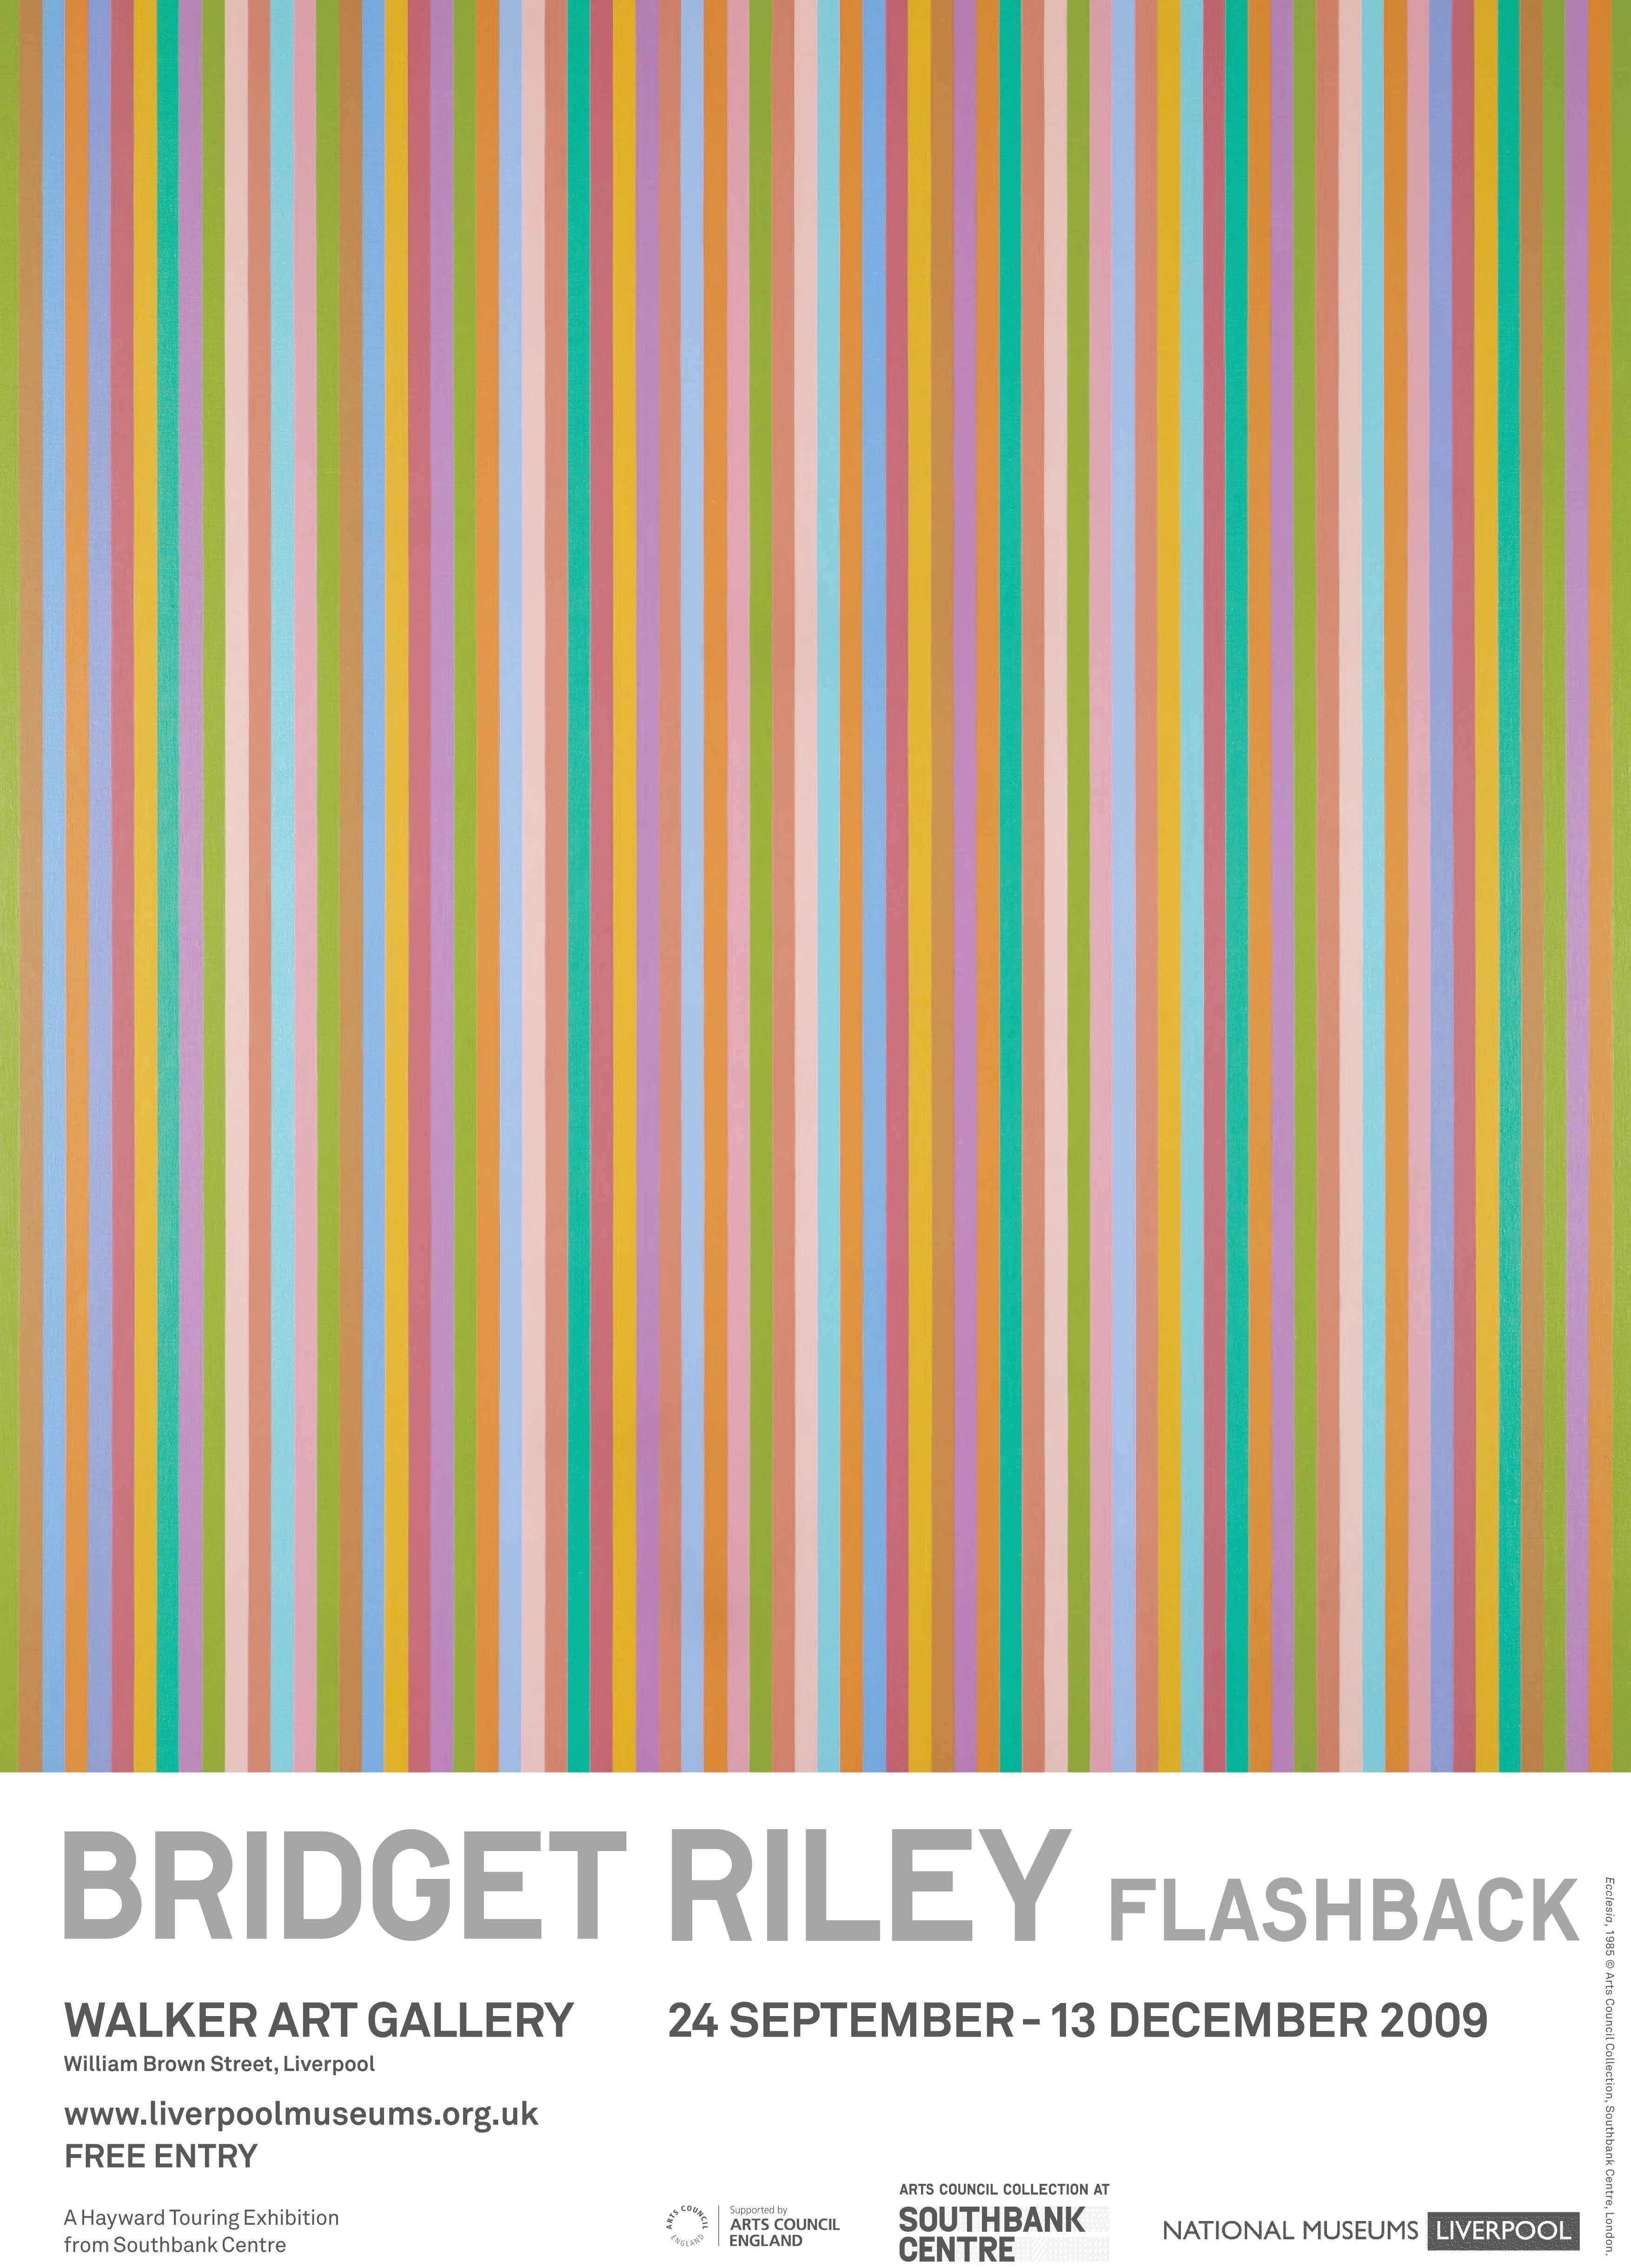 Poster From The Bridget Riley Flashback Exhibition That